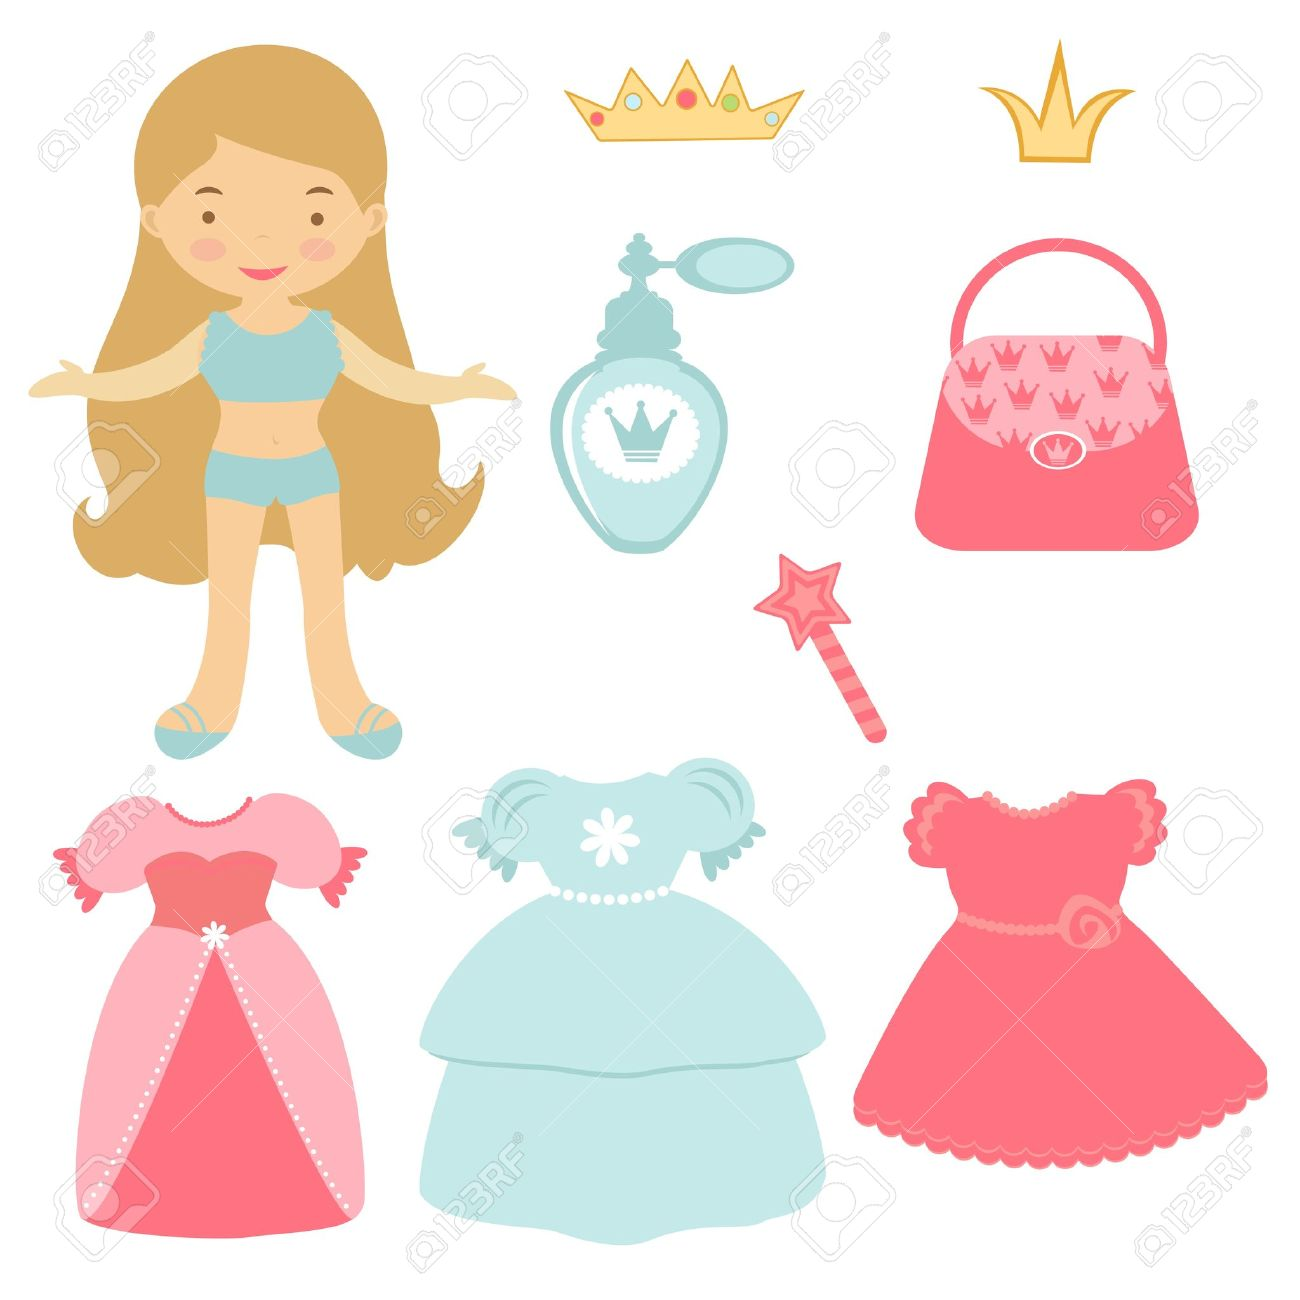 Dress up of princess - Dress Up Doll Illustration Of Princess Paper Doll With Various Accessories